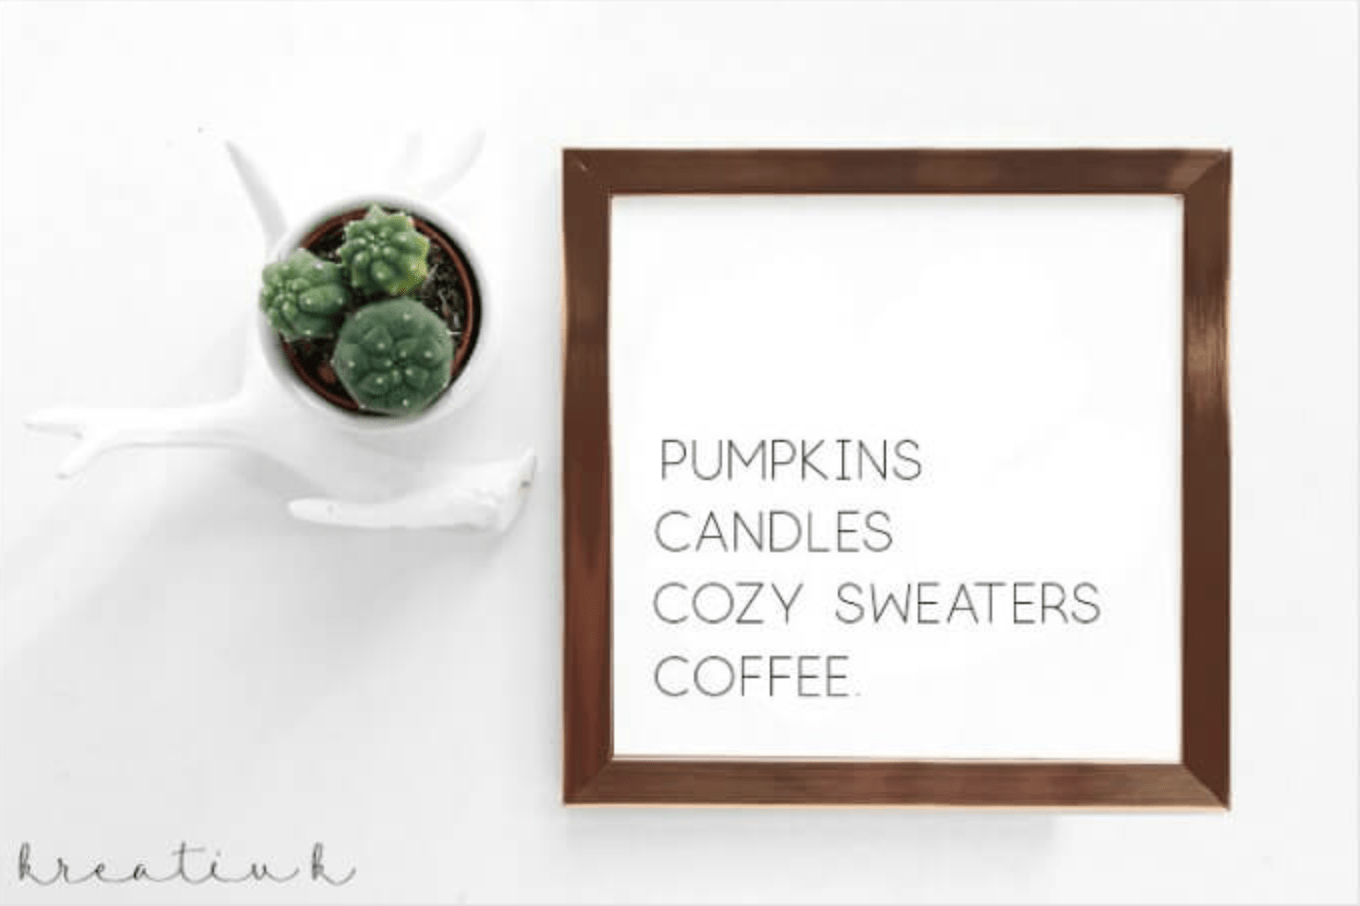 Pumpkins Candles Cozy Sweaters Coffee Free Printable